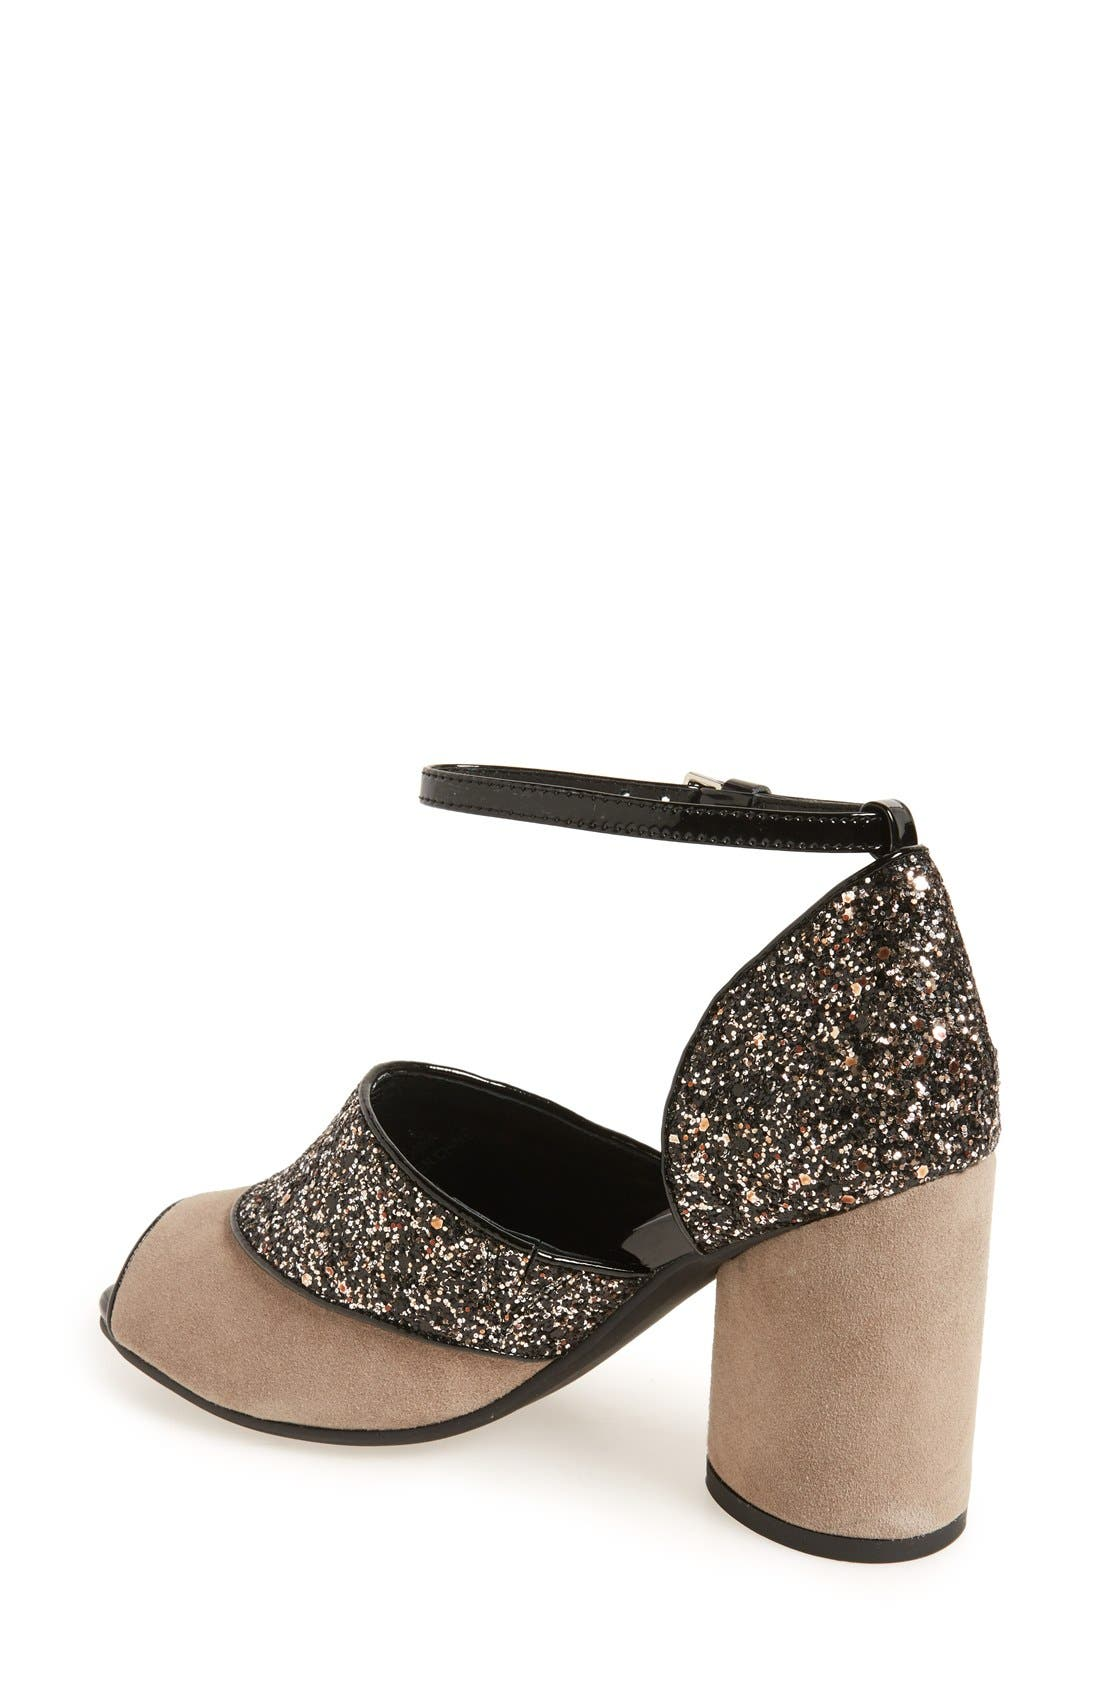 Alternate Image 2  - Jeffrey Campbell 'Bibana' Glitter Sandal (Women)